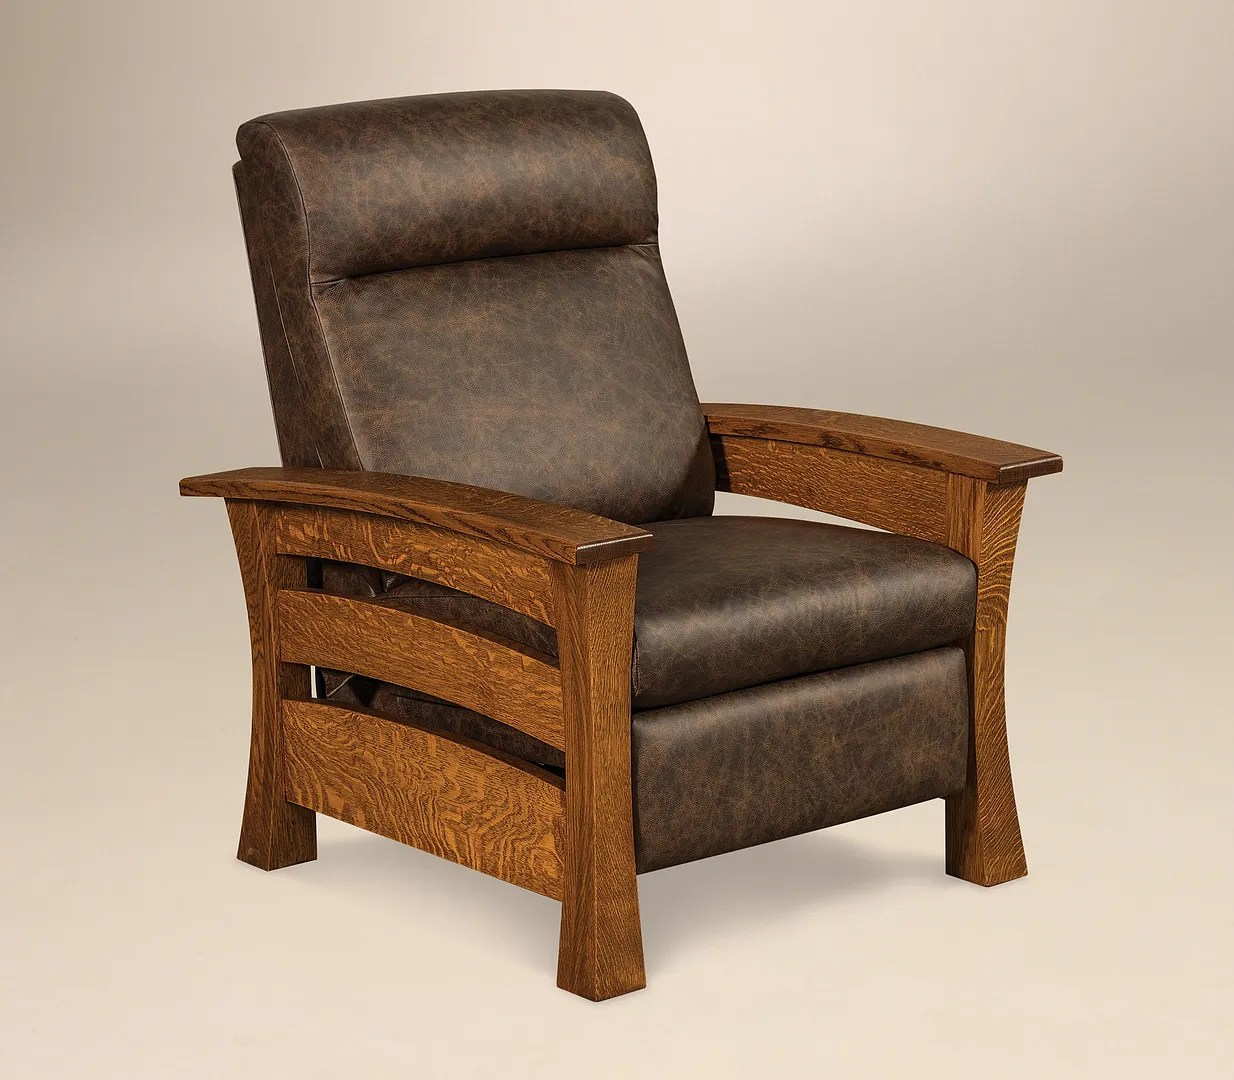 Mission Chairs Amish Mission Arts And Crafts Recliner Chair Barrington